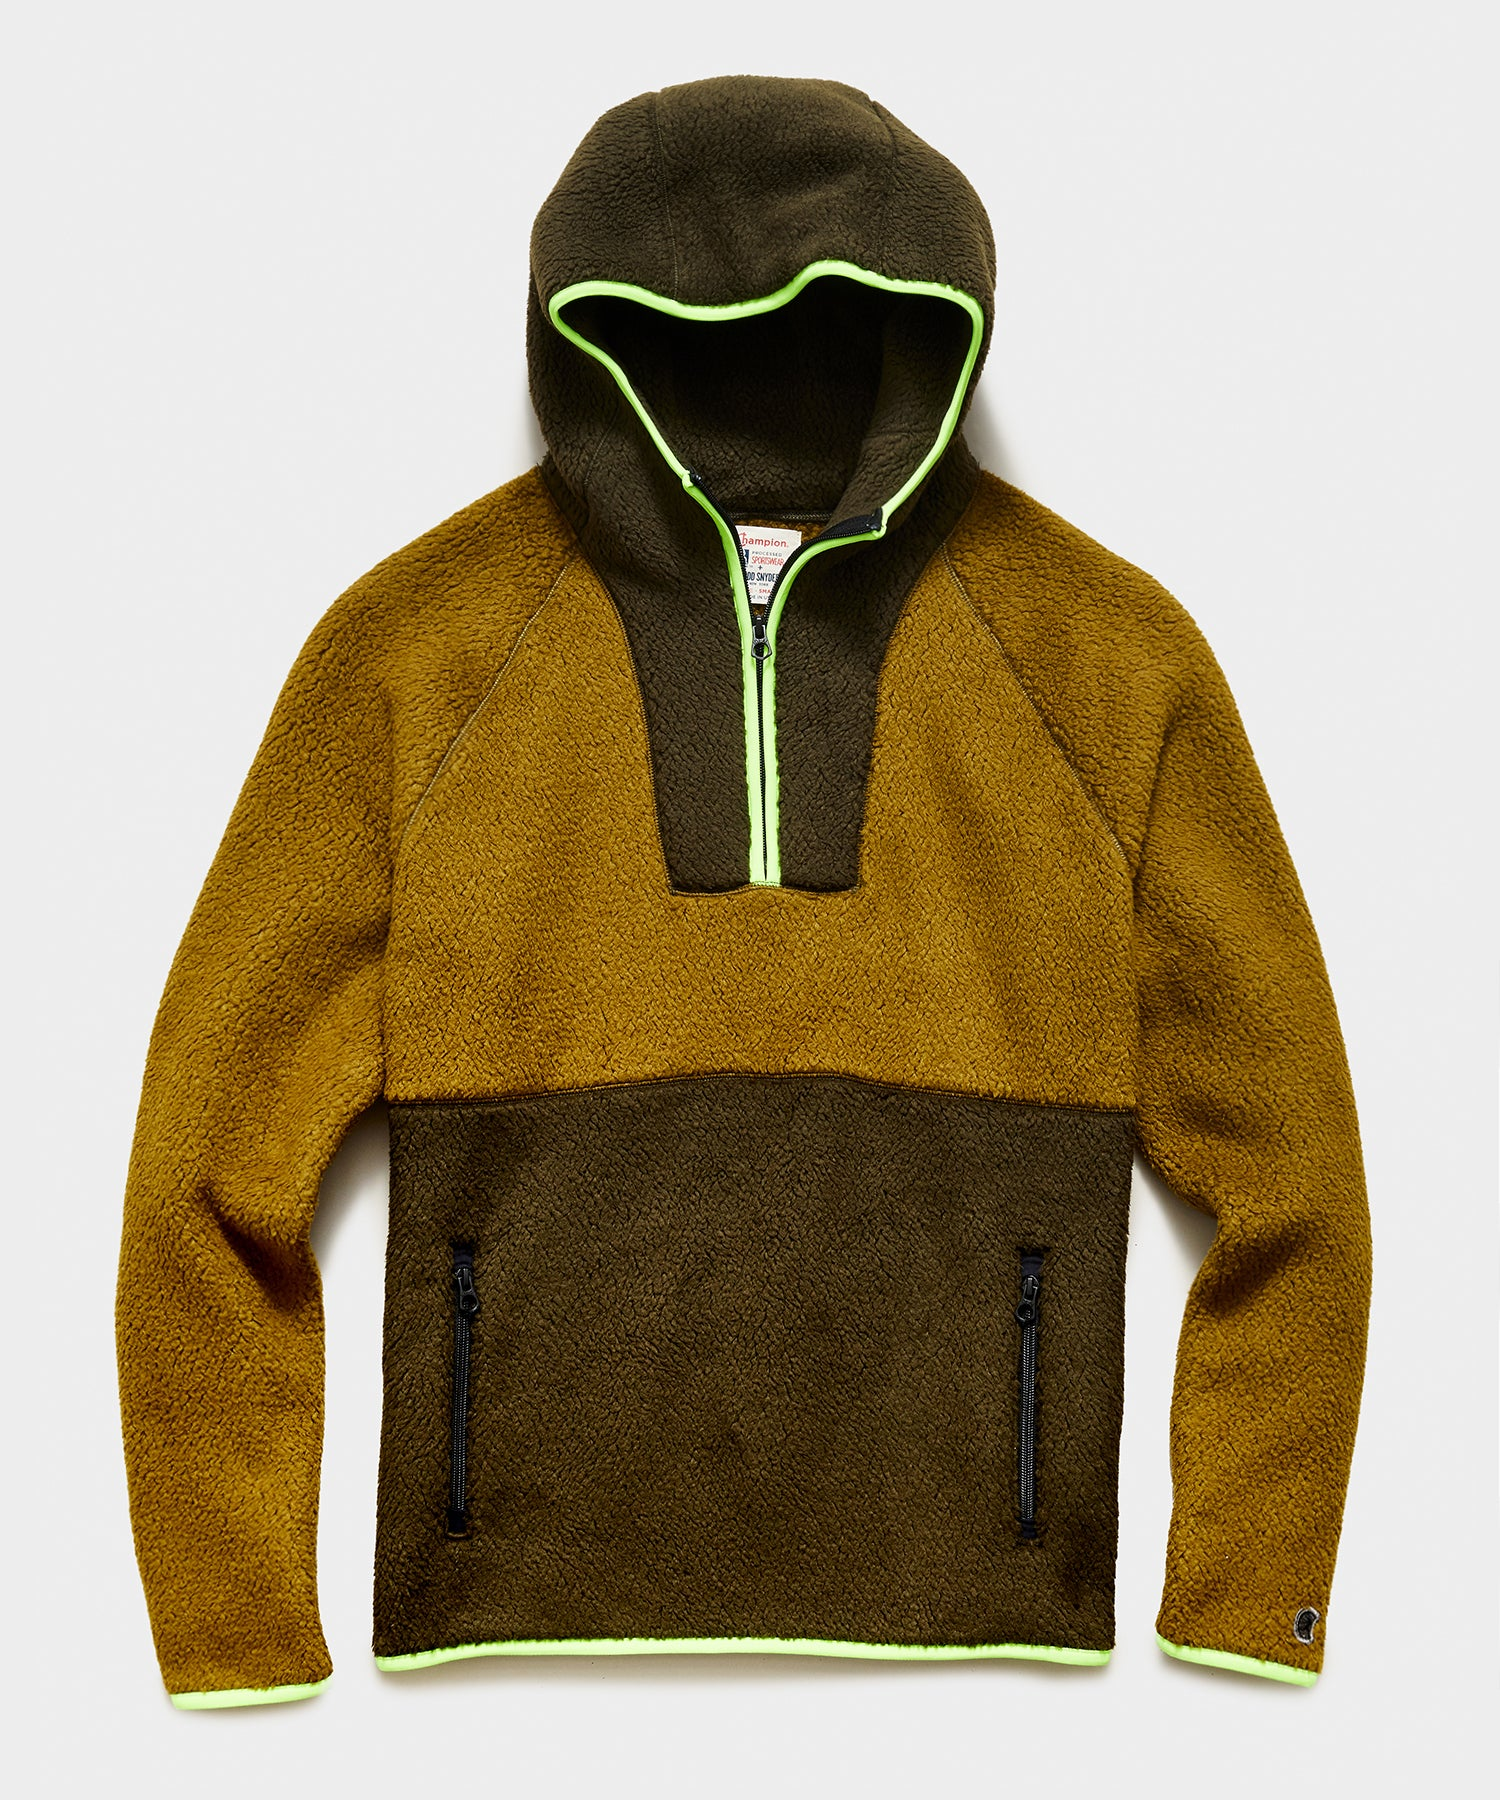 Polartec Half Zip Hoodie in Olive Oil